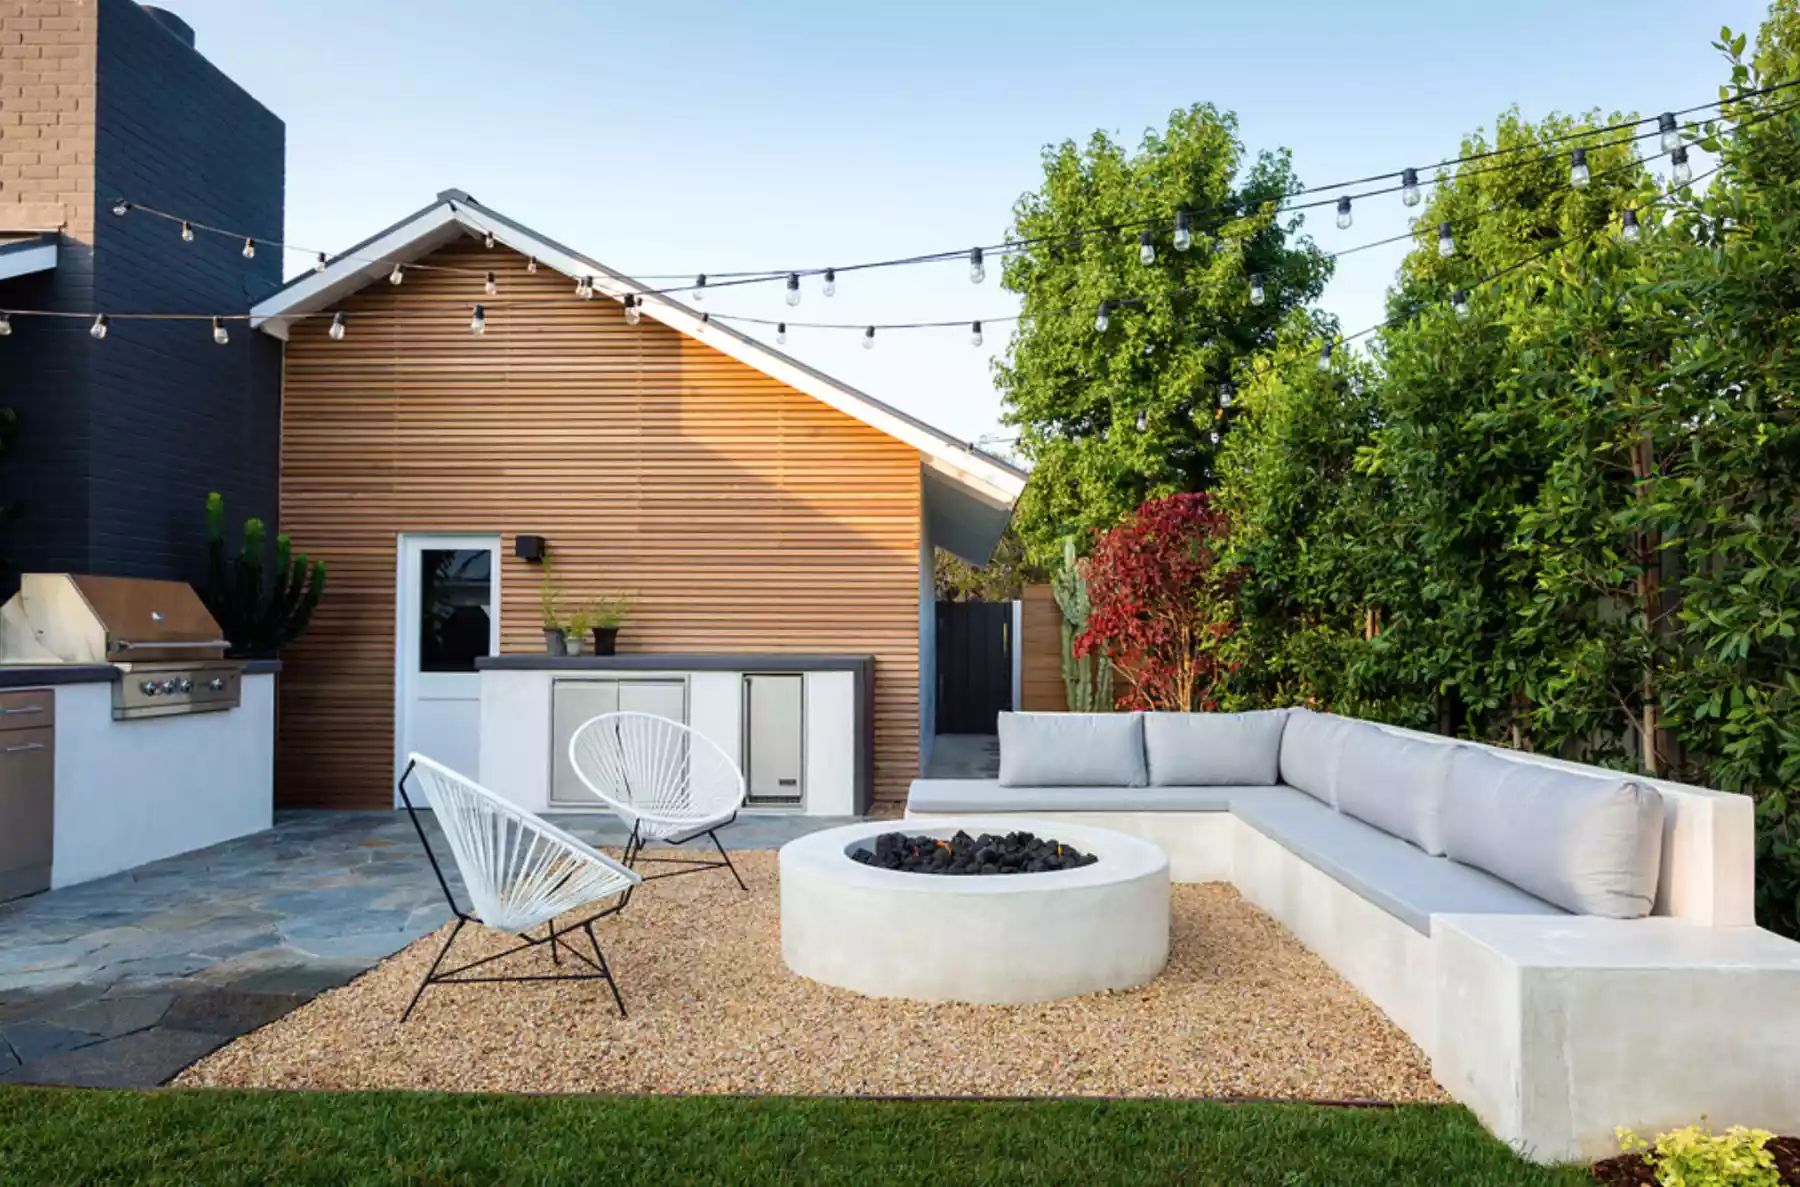 Modern Highlands -   Beautiful Low Maintenance Front Yard Garden and Landscaping Ideas